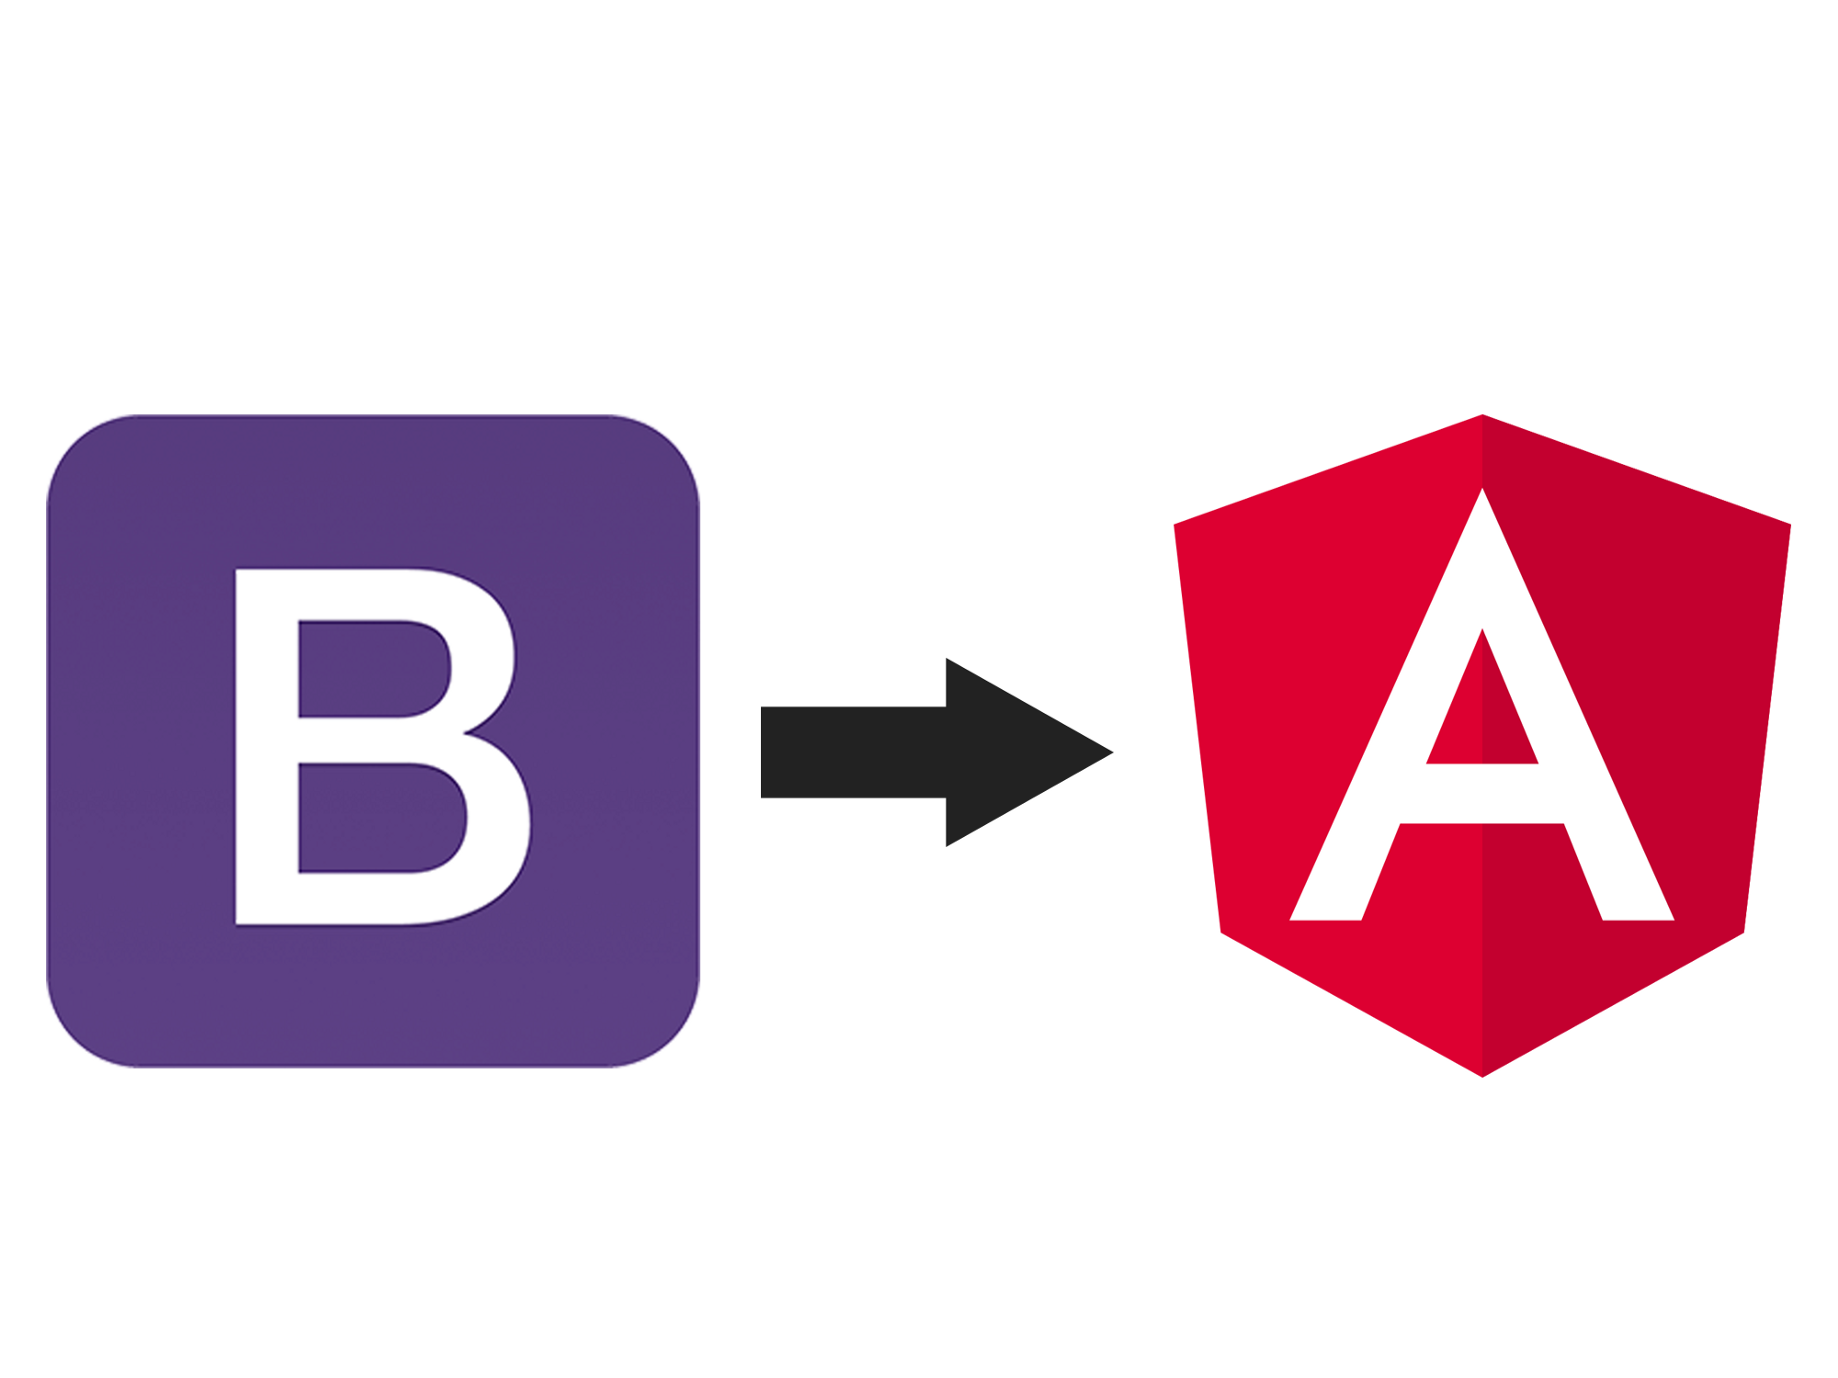 How to Build a Responsive Bootstrap 4 Navbar in Angular Without JQuery